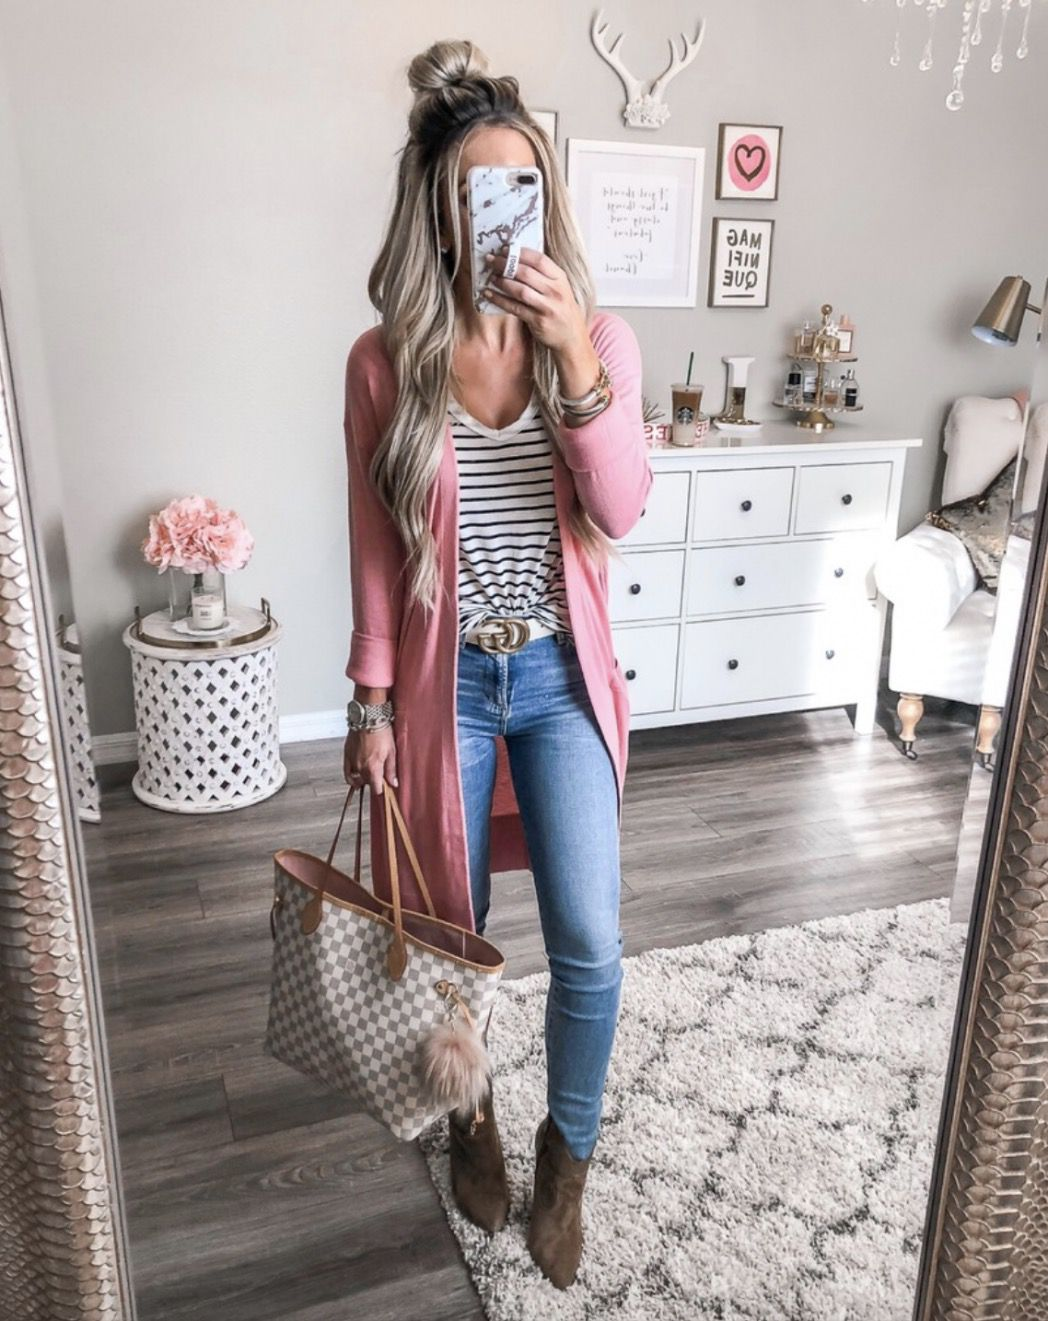 20 Cute Casual Fall Outfits That Will Keep You Cozy & Stylish